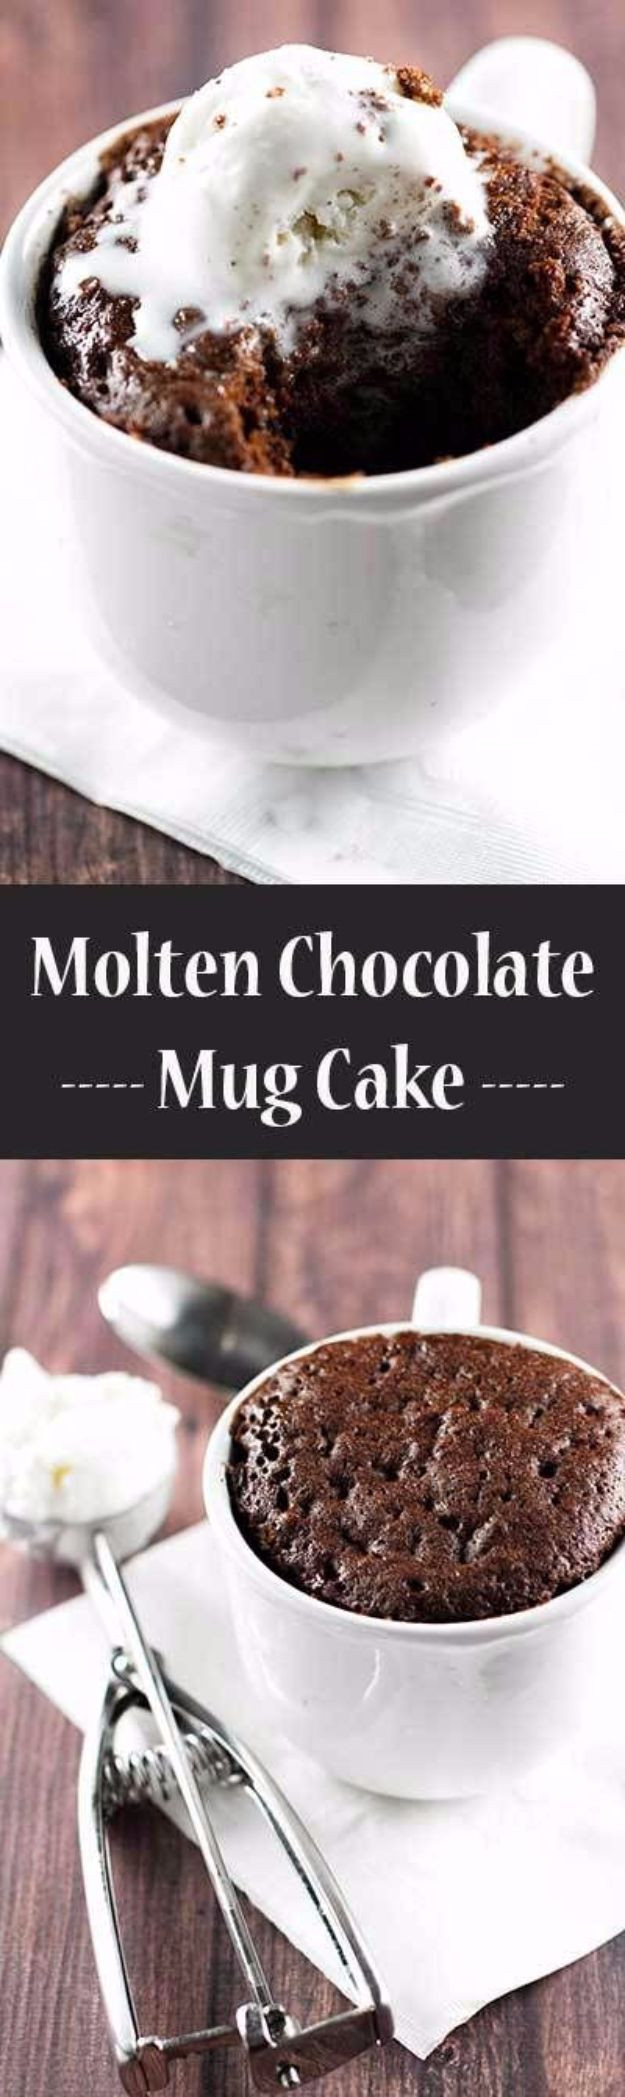 Easy Chocolate Mug Cake  43 Easy Snacks You Can Make in Less Than 5 Minutes DIY Joy